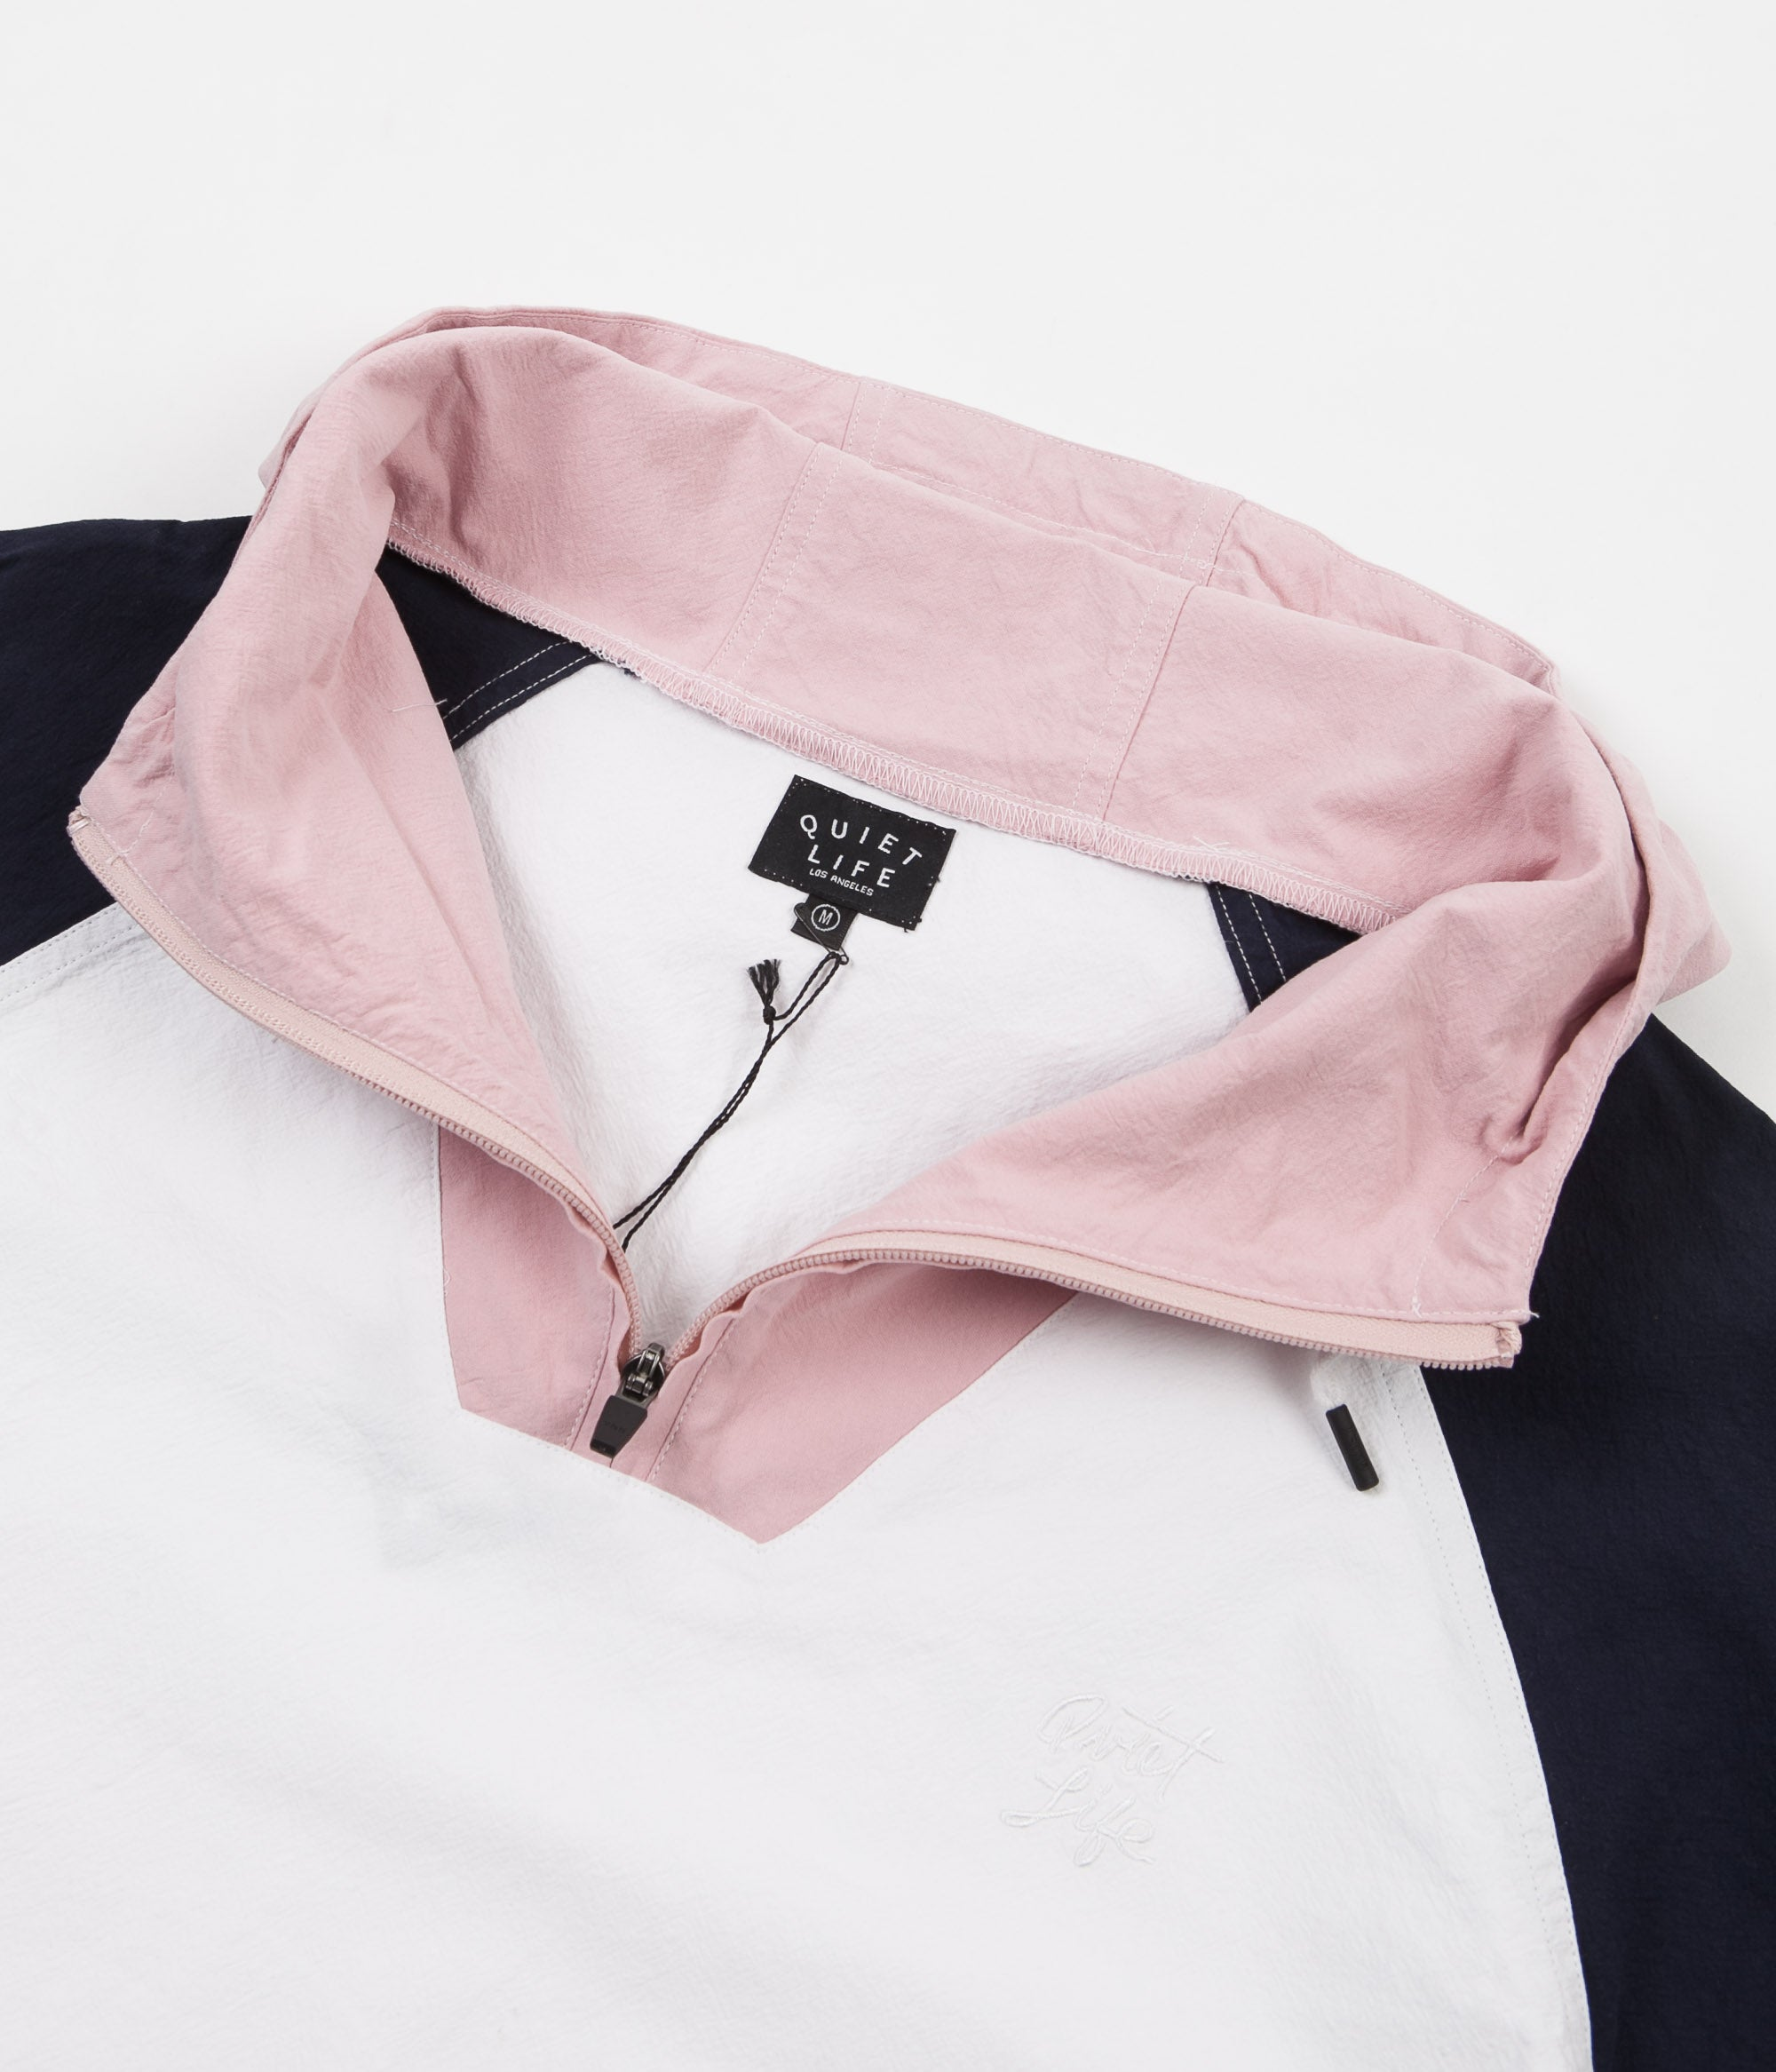 The Quiet Life Boardwalk Windy Pullover Jacket - White / Navy / Pink